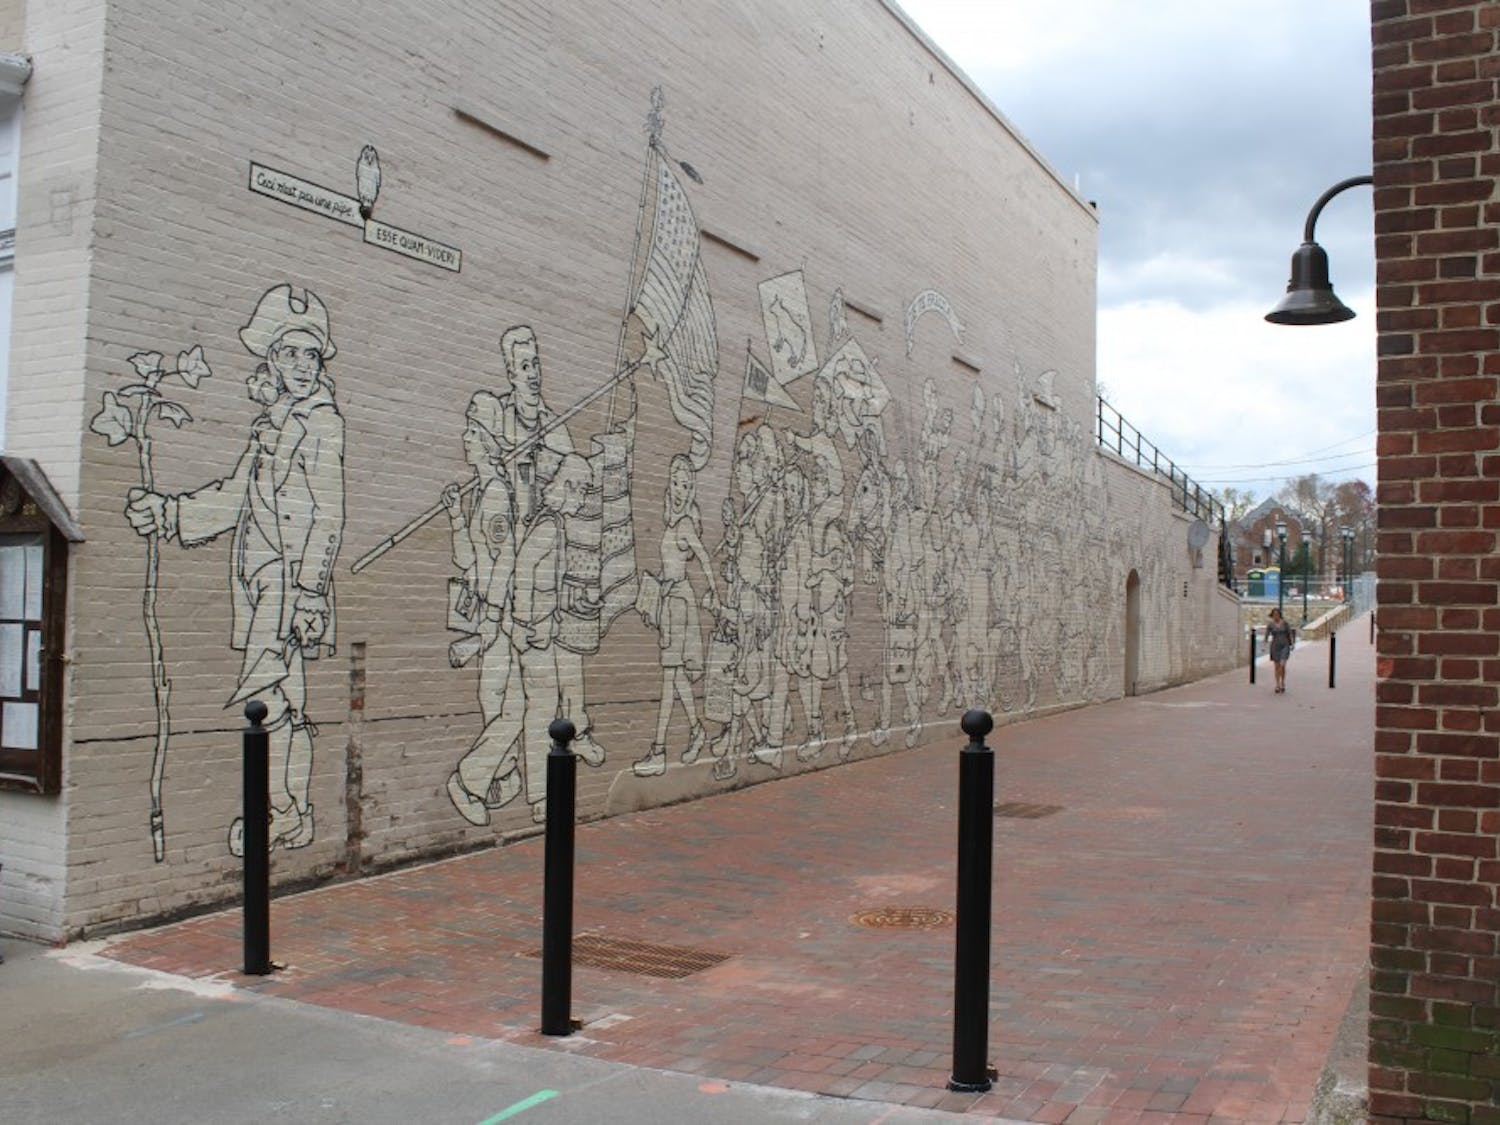 """Porthole Alley contains the """"Parade of Humanity"""" mural, painted in 1997 by Chapel Hill native Michael Brown."""